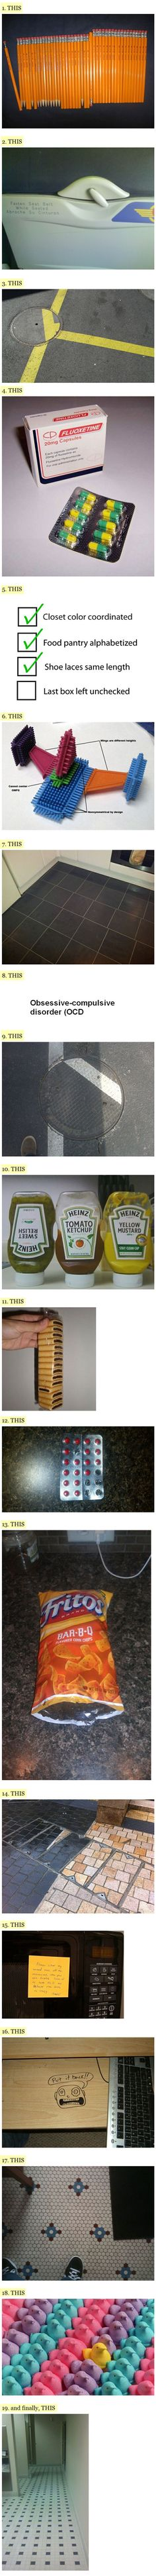 19 Things That Will Drive Your OCD Self Insane